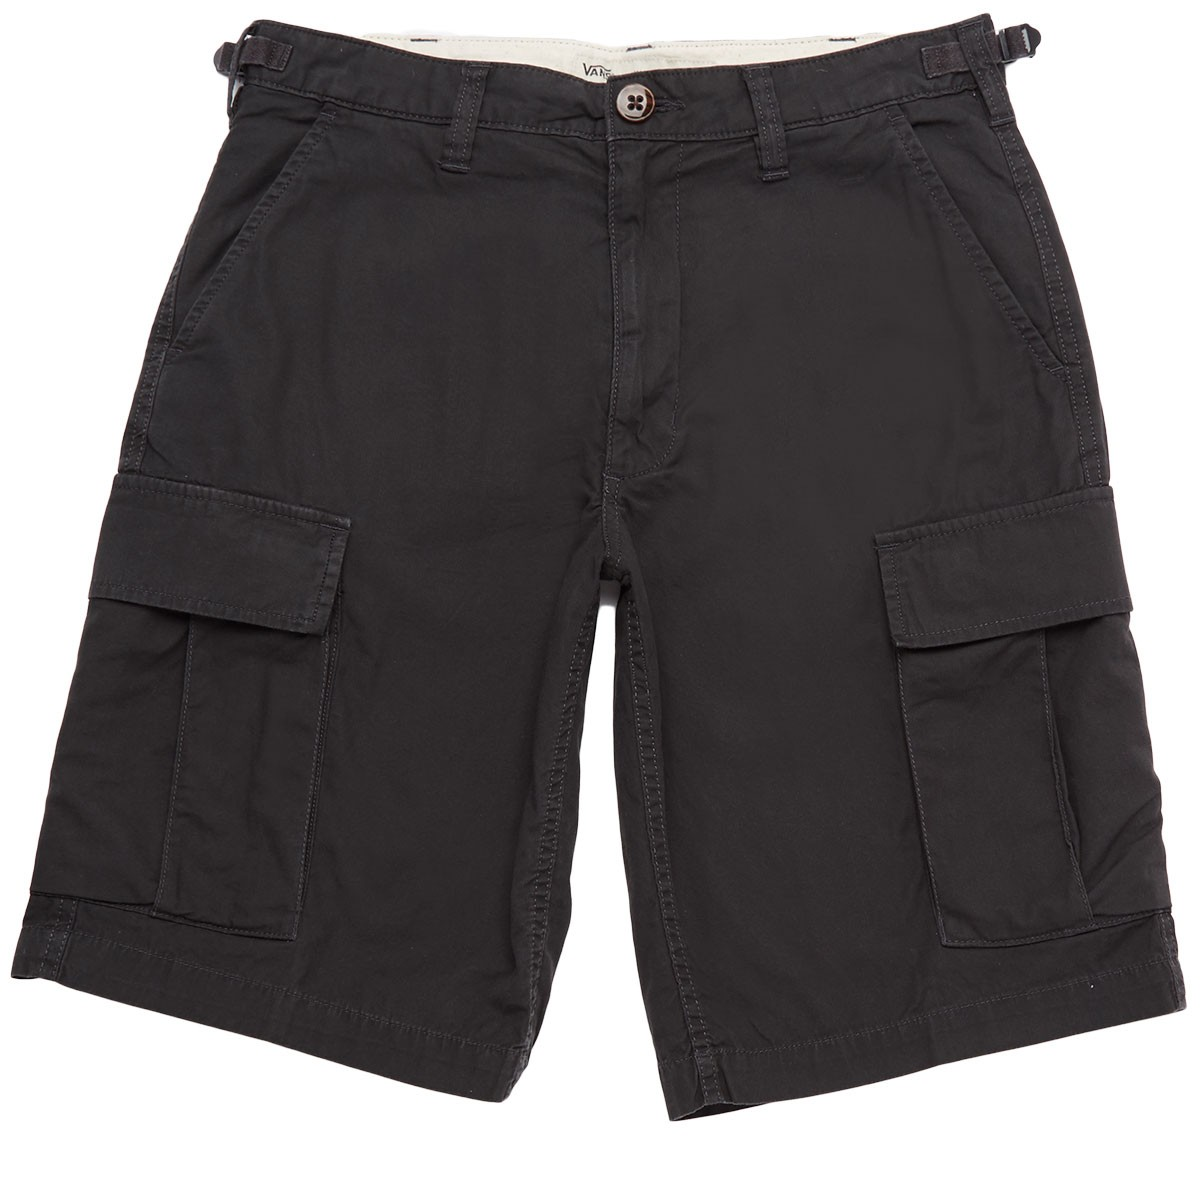 0af356abf9 Vans Tremain Shorts - New Charcoal